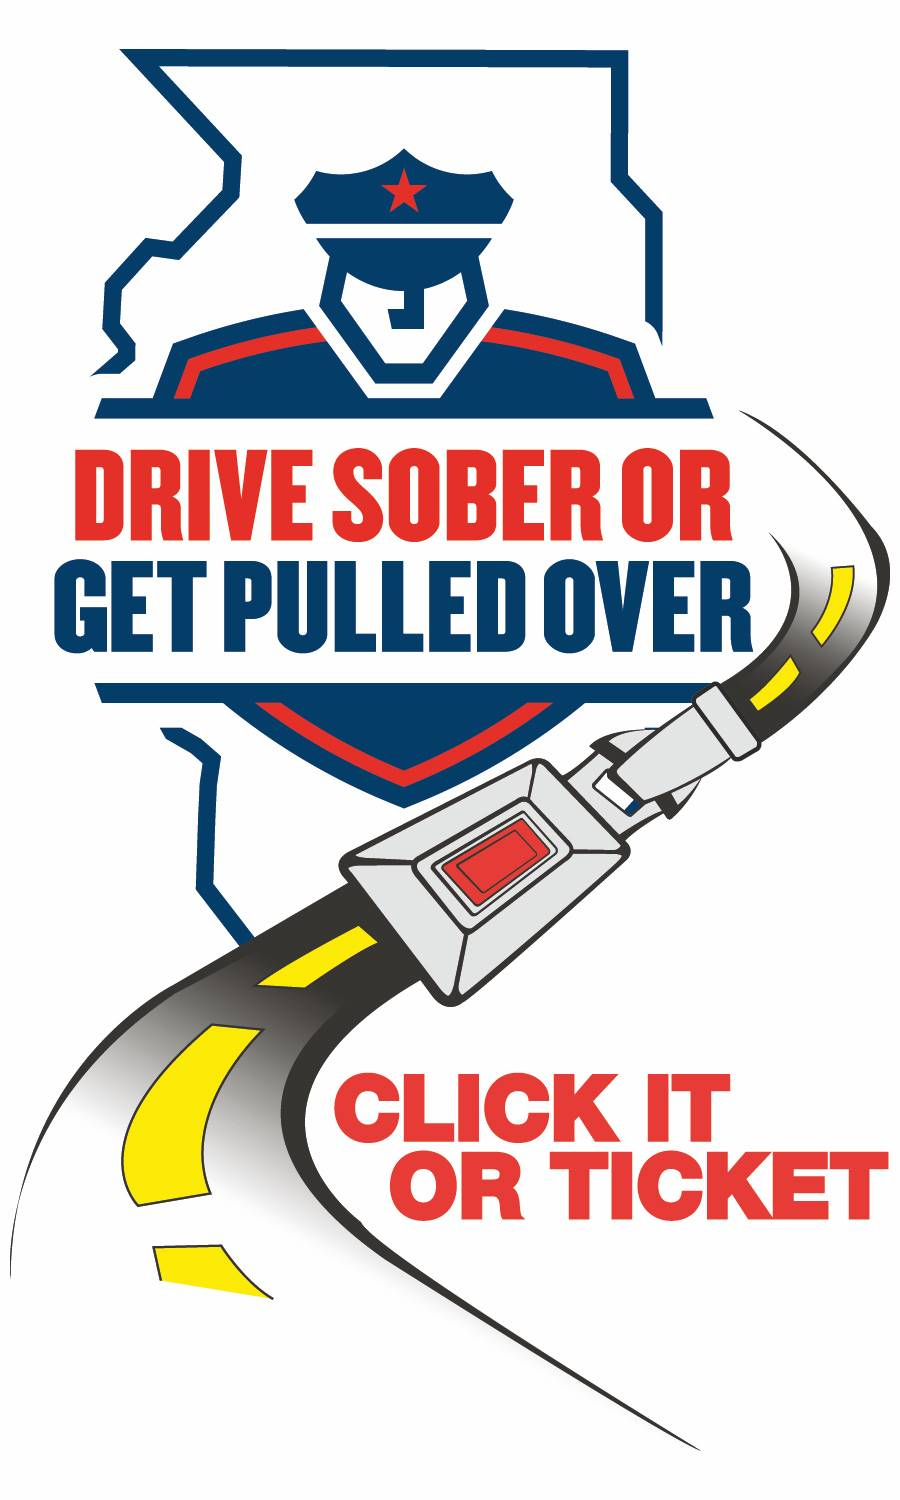 Drive Sober or Get Pulled Over/Click It or Ticket logo